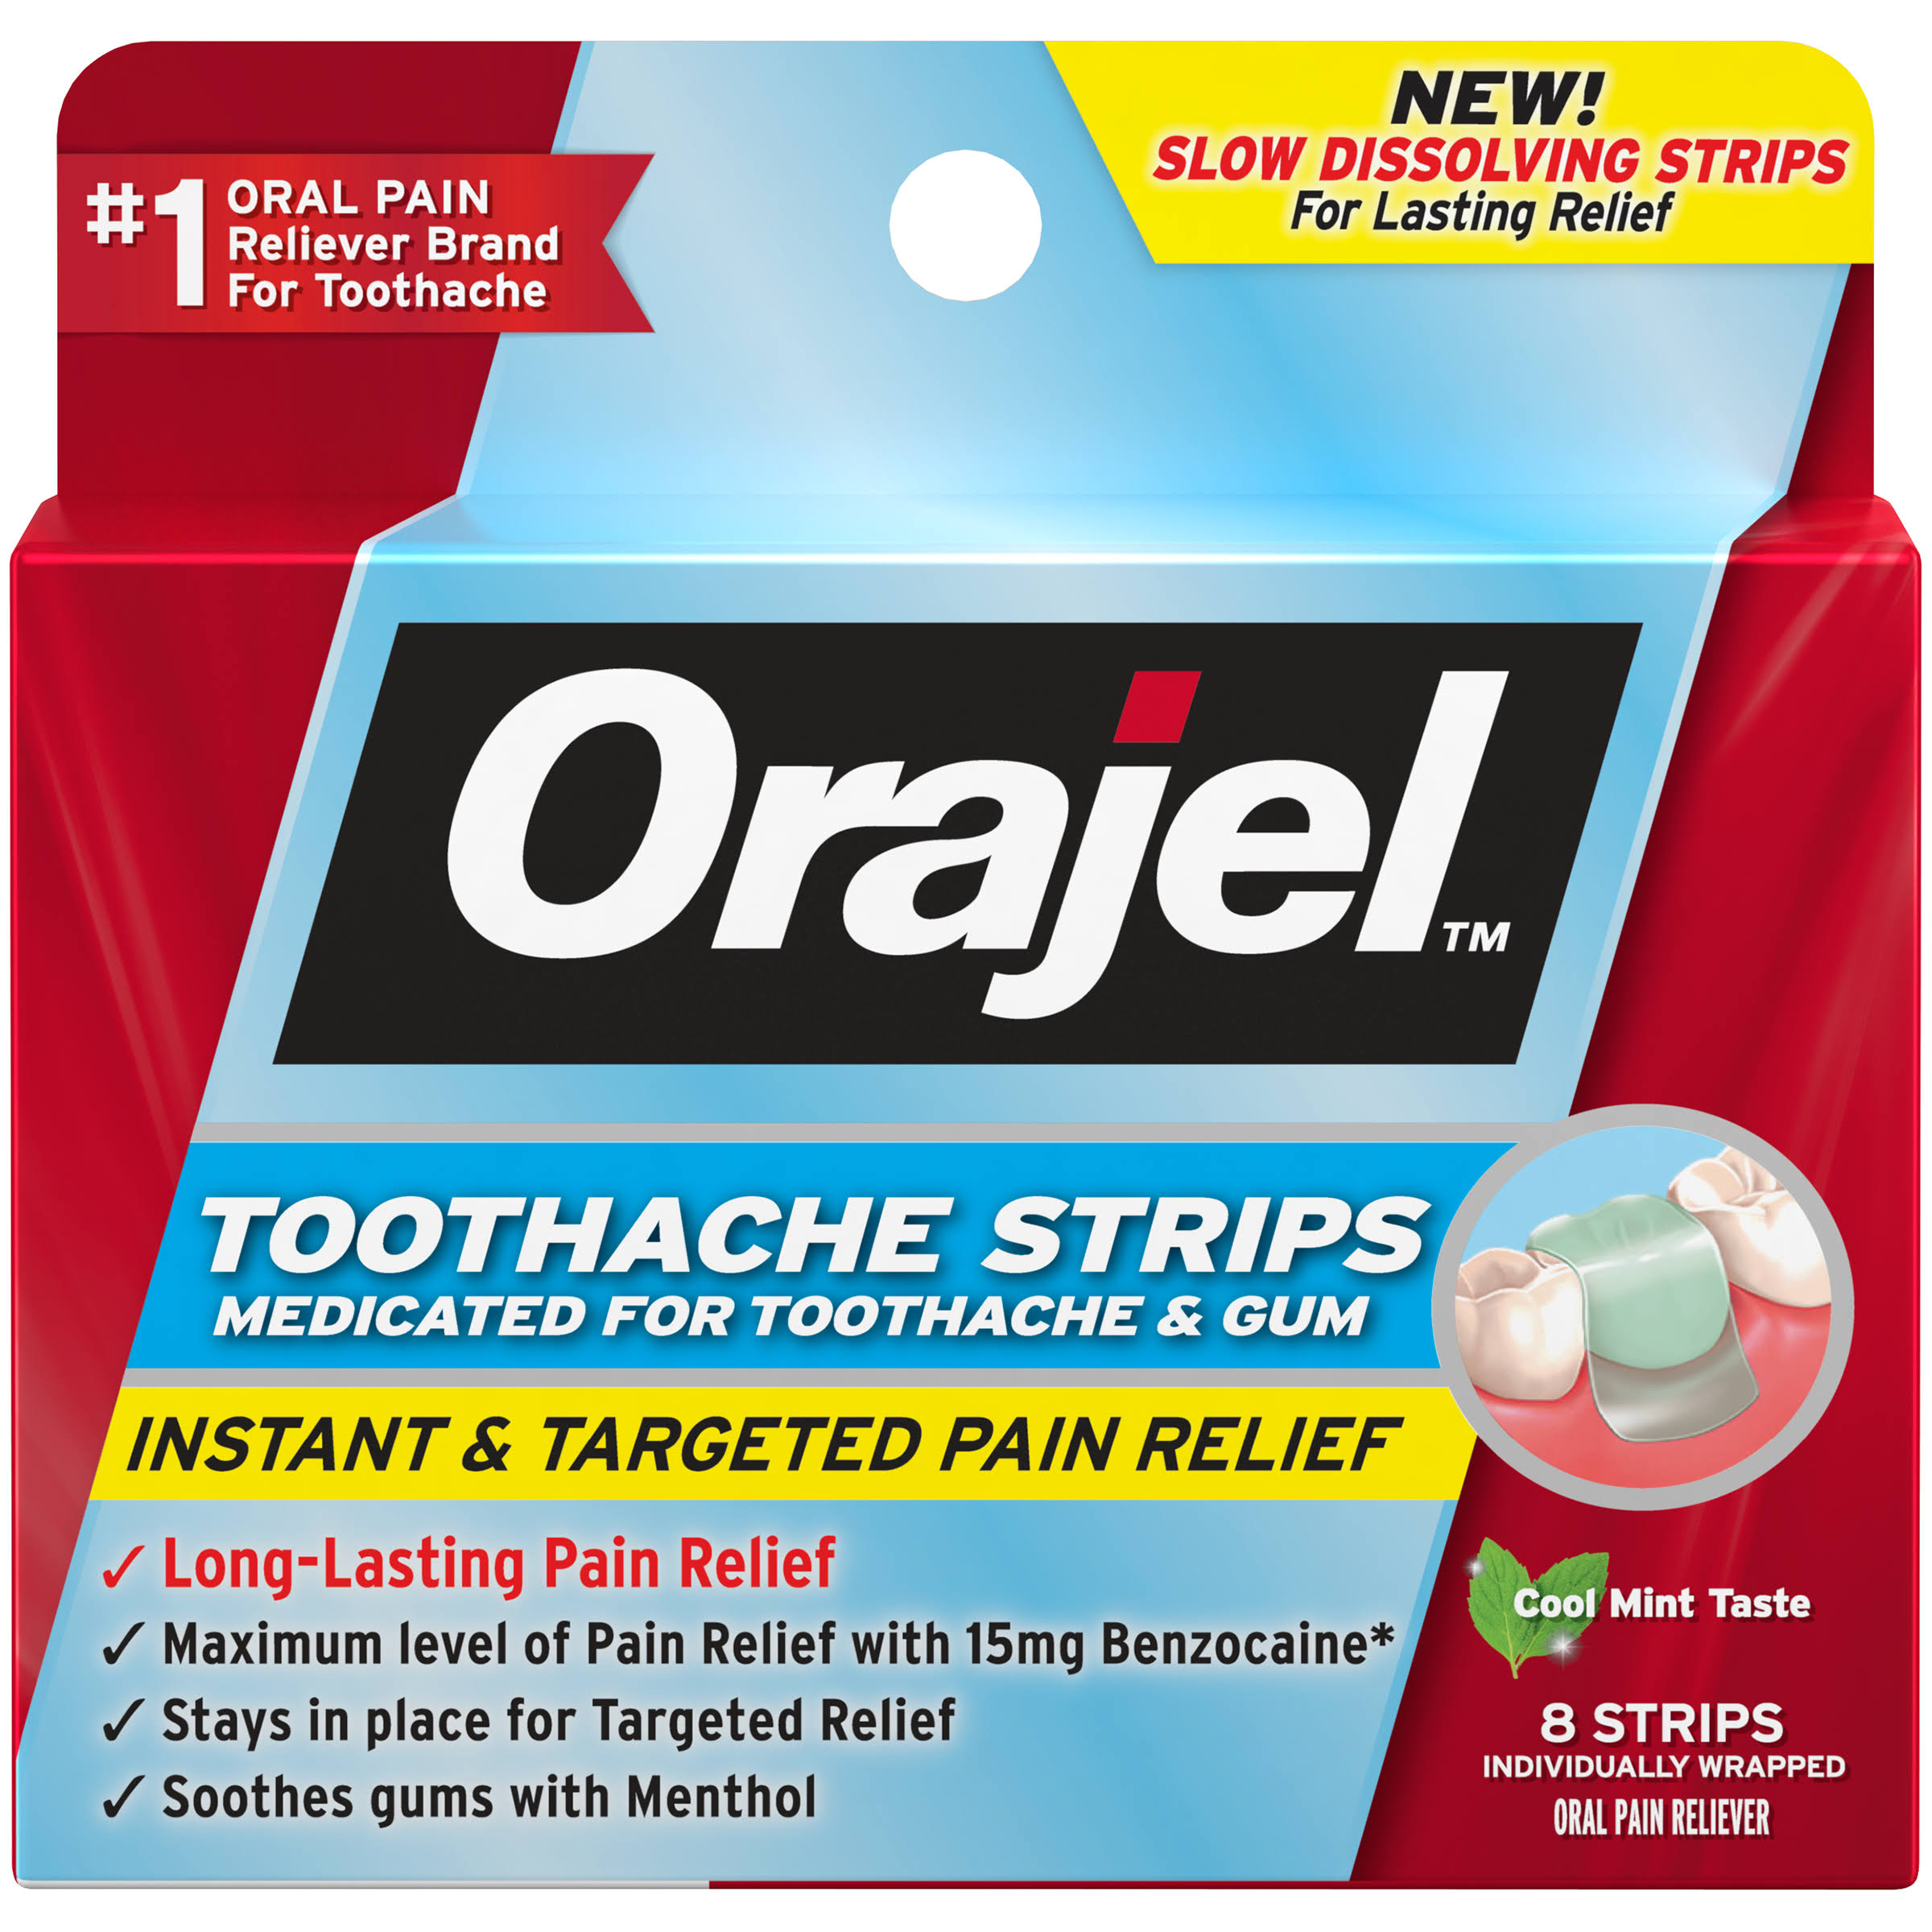 Orajel Toothache Strips, Cool Mint Taste - 8 strips